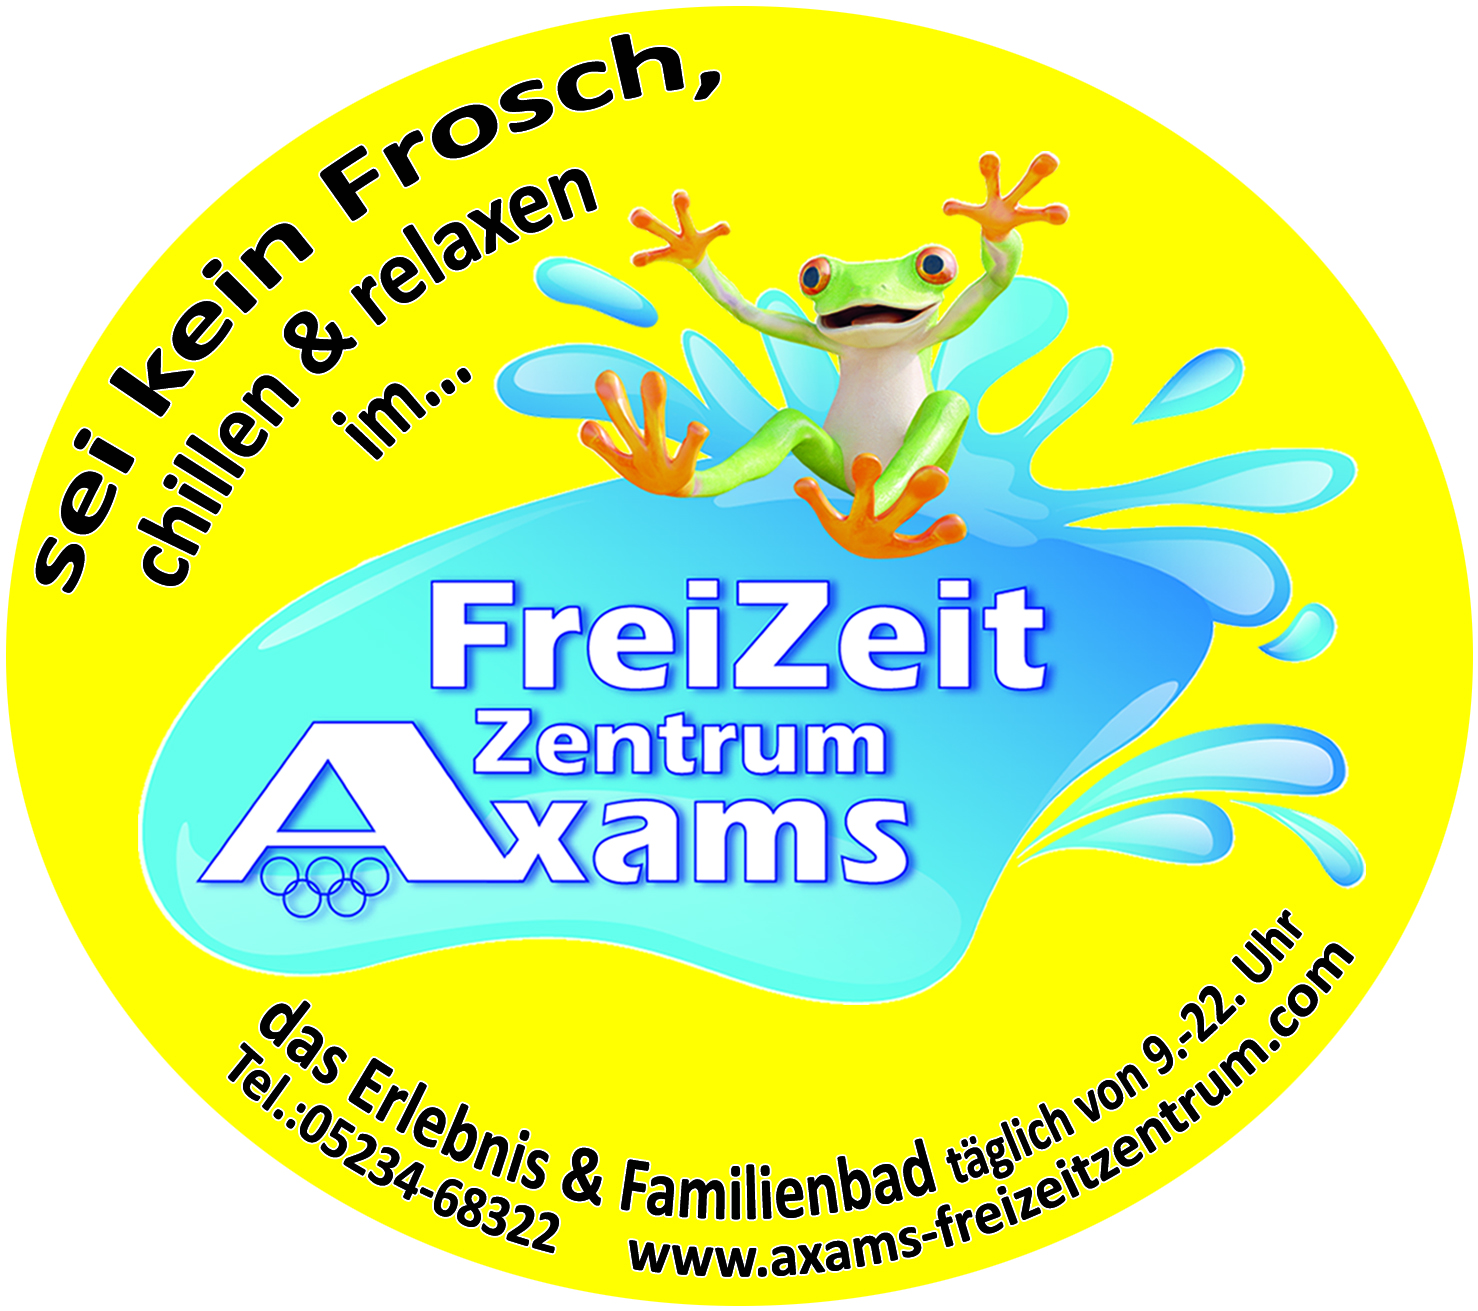 Freizeitzentrum Axams